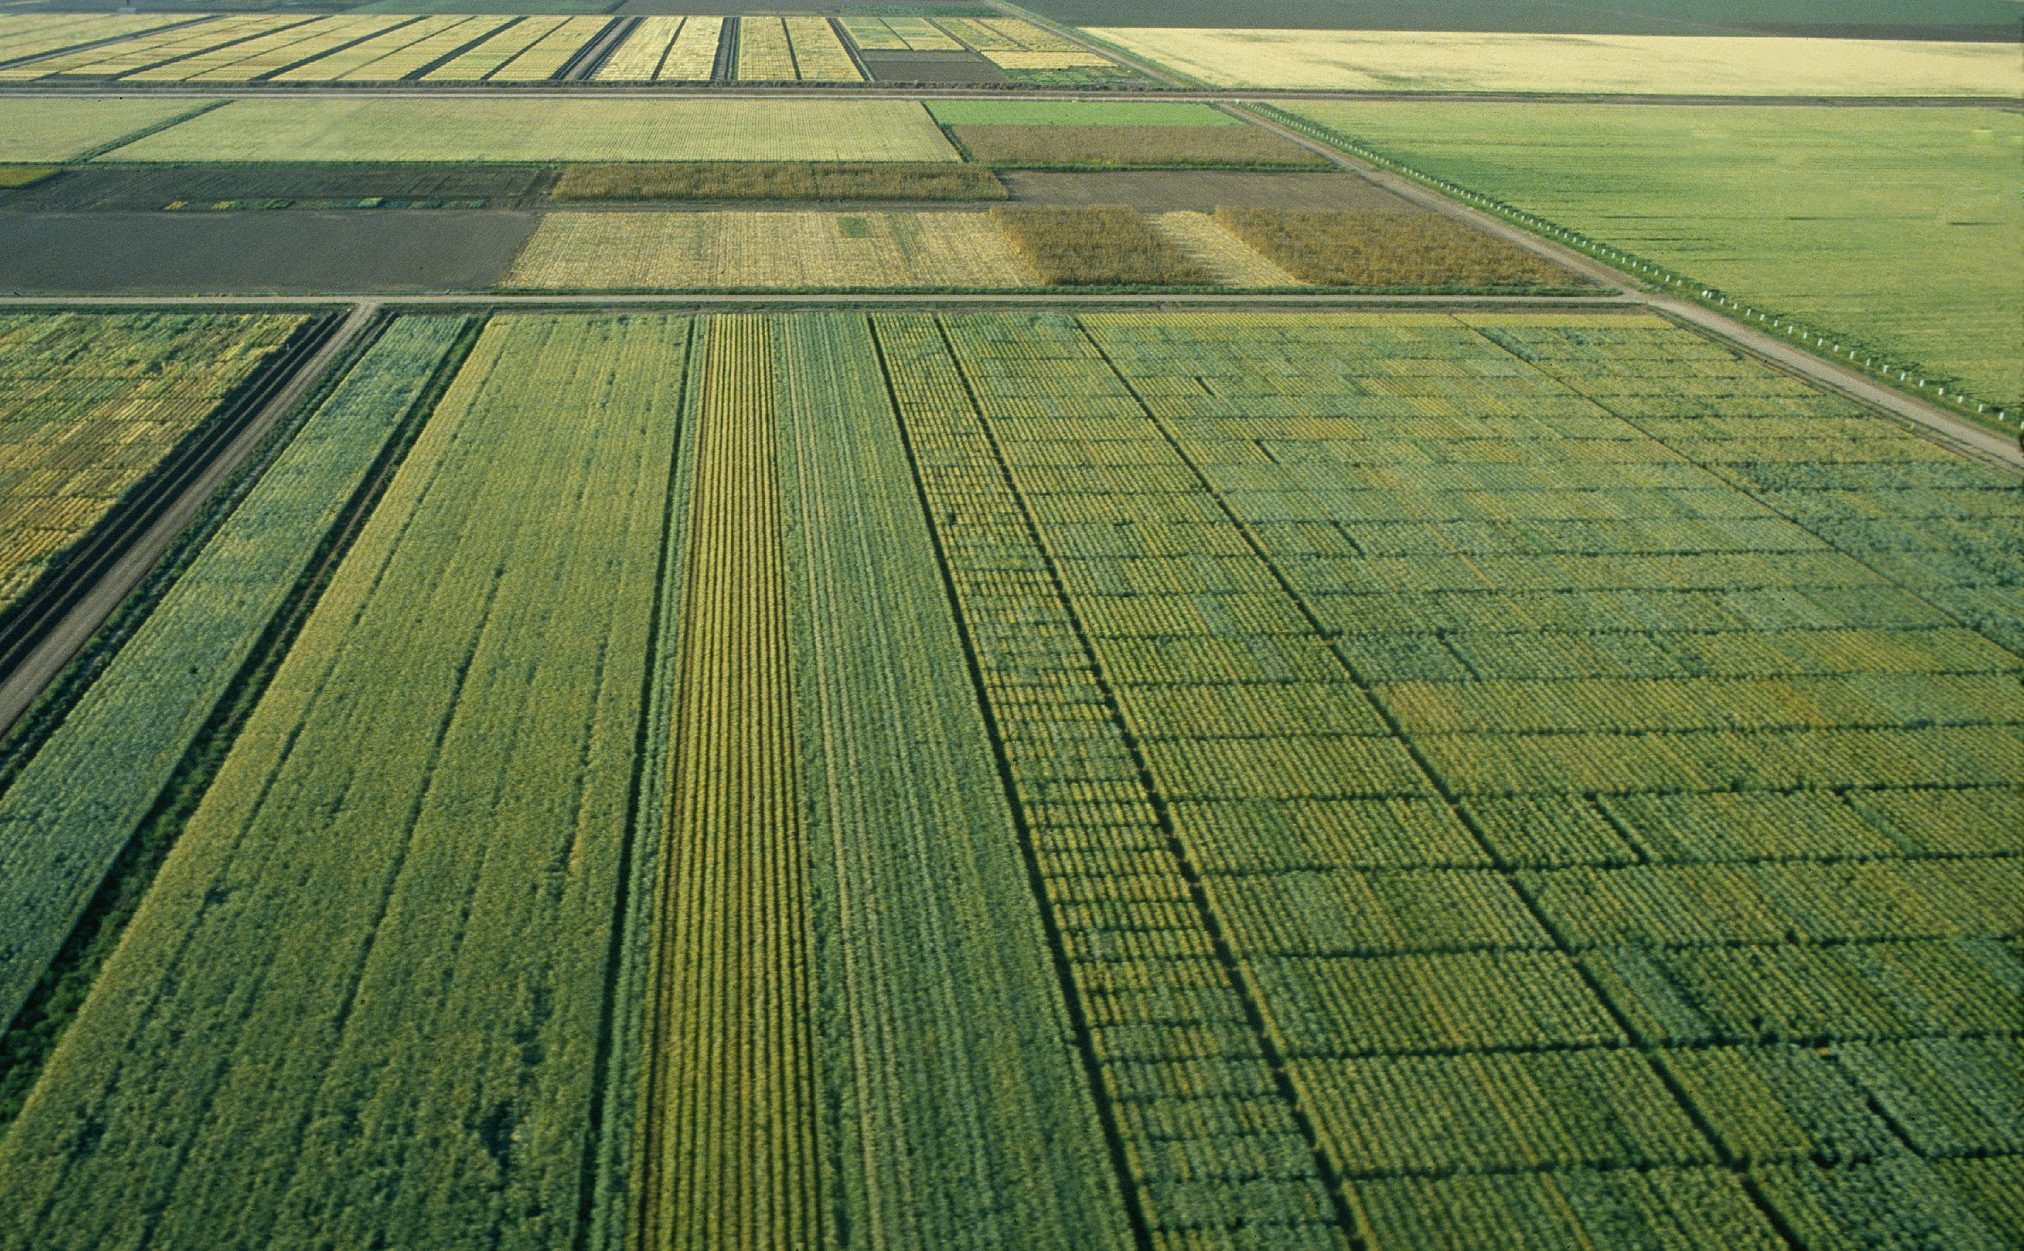 Aerial shot of wheat fields at CIMMYT's experimental station in northern Mexico.